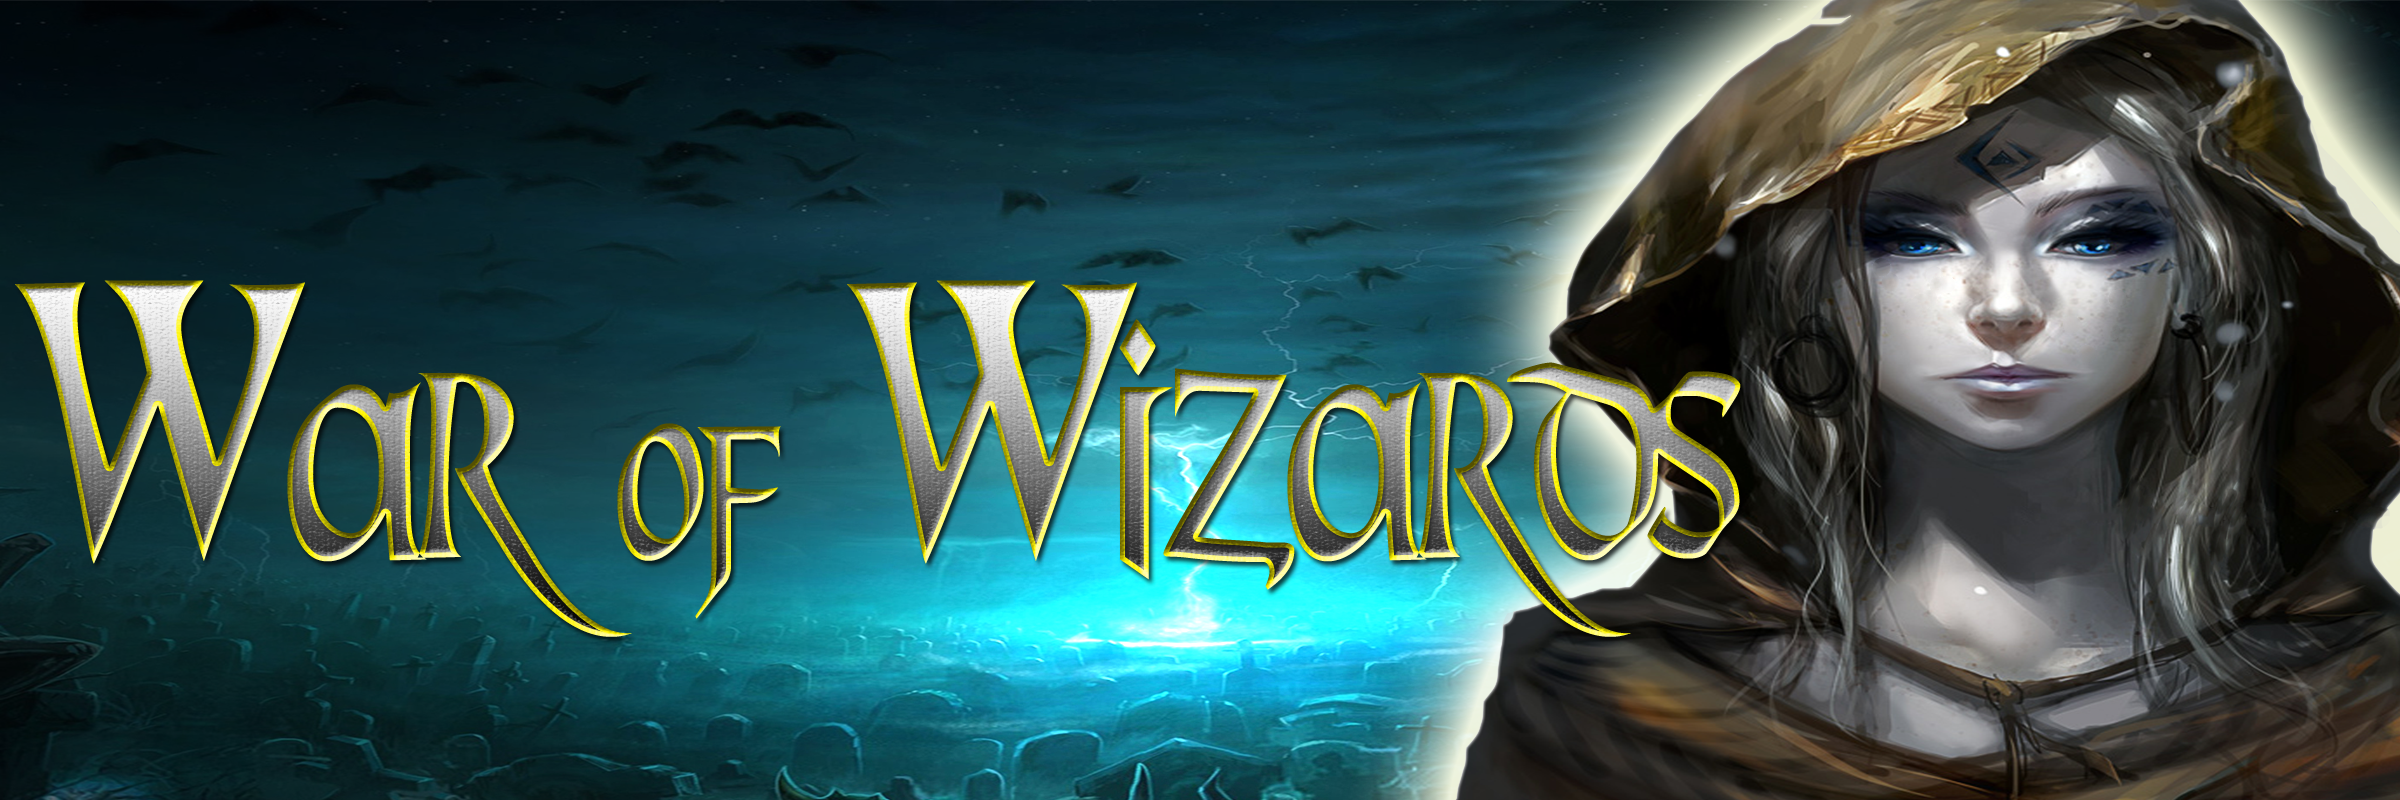 Banner Ad Design by Lara Puno - Entry No. 37 in the Banner Ad Design Contest Banner Ad Design - War of Wizards (fantasy game).